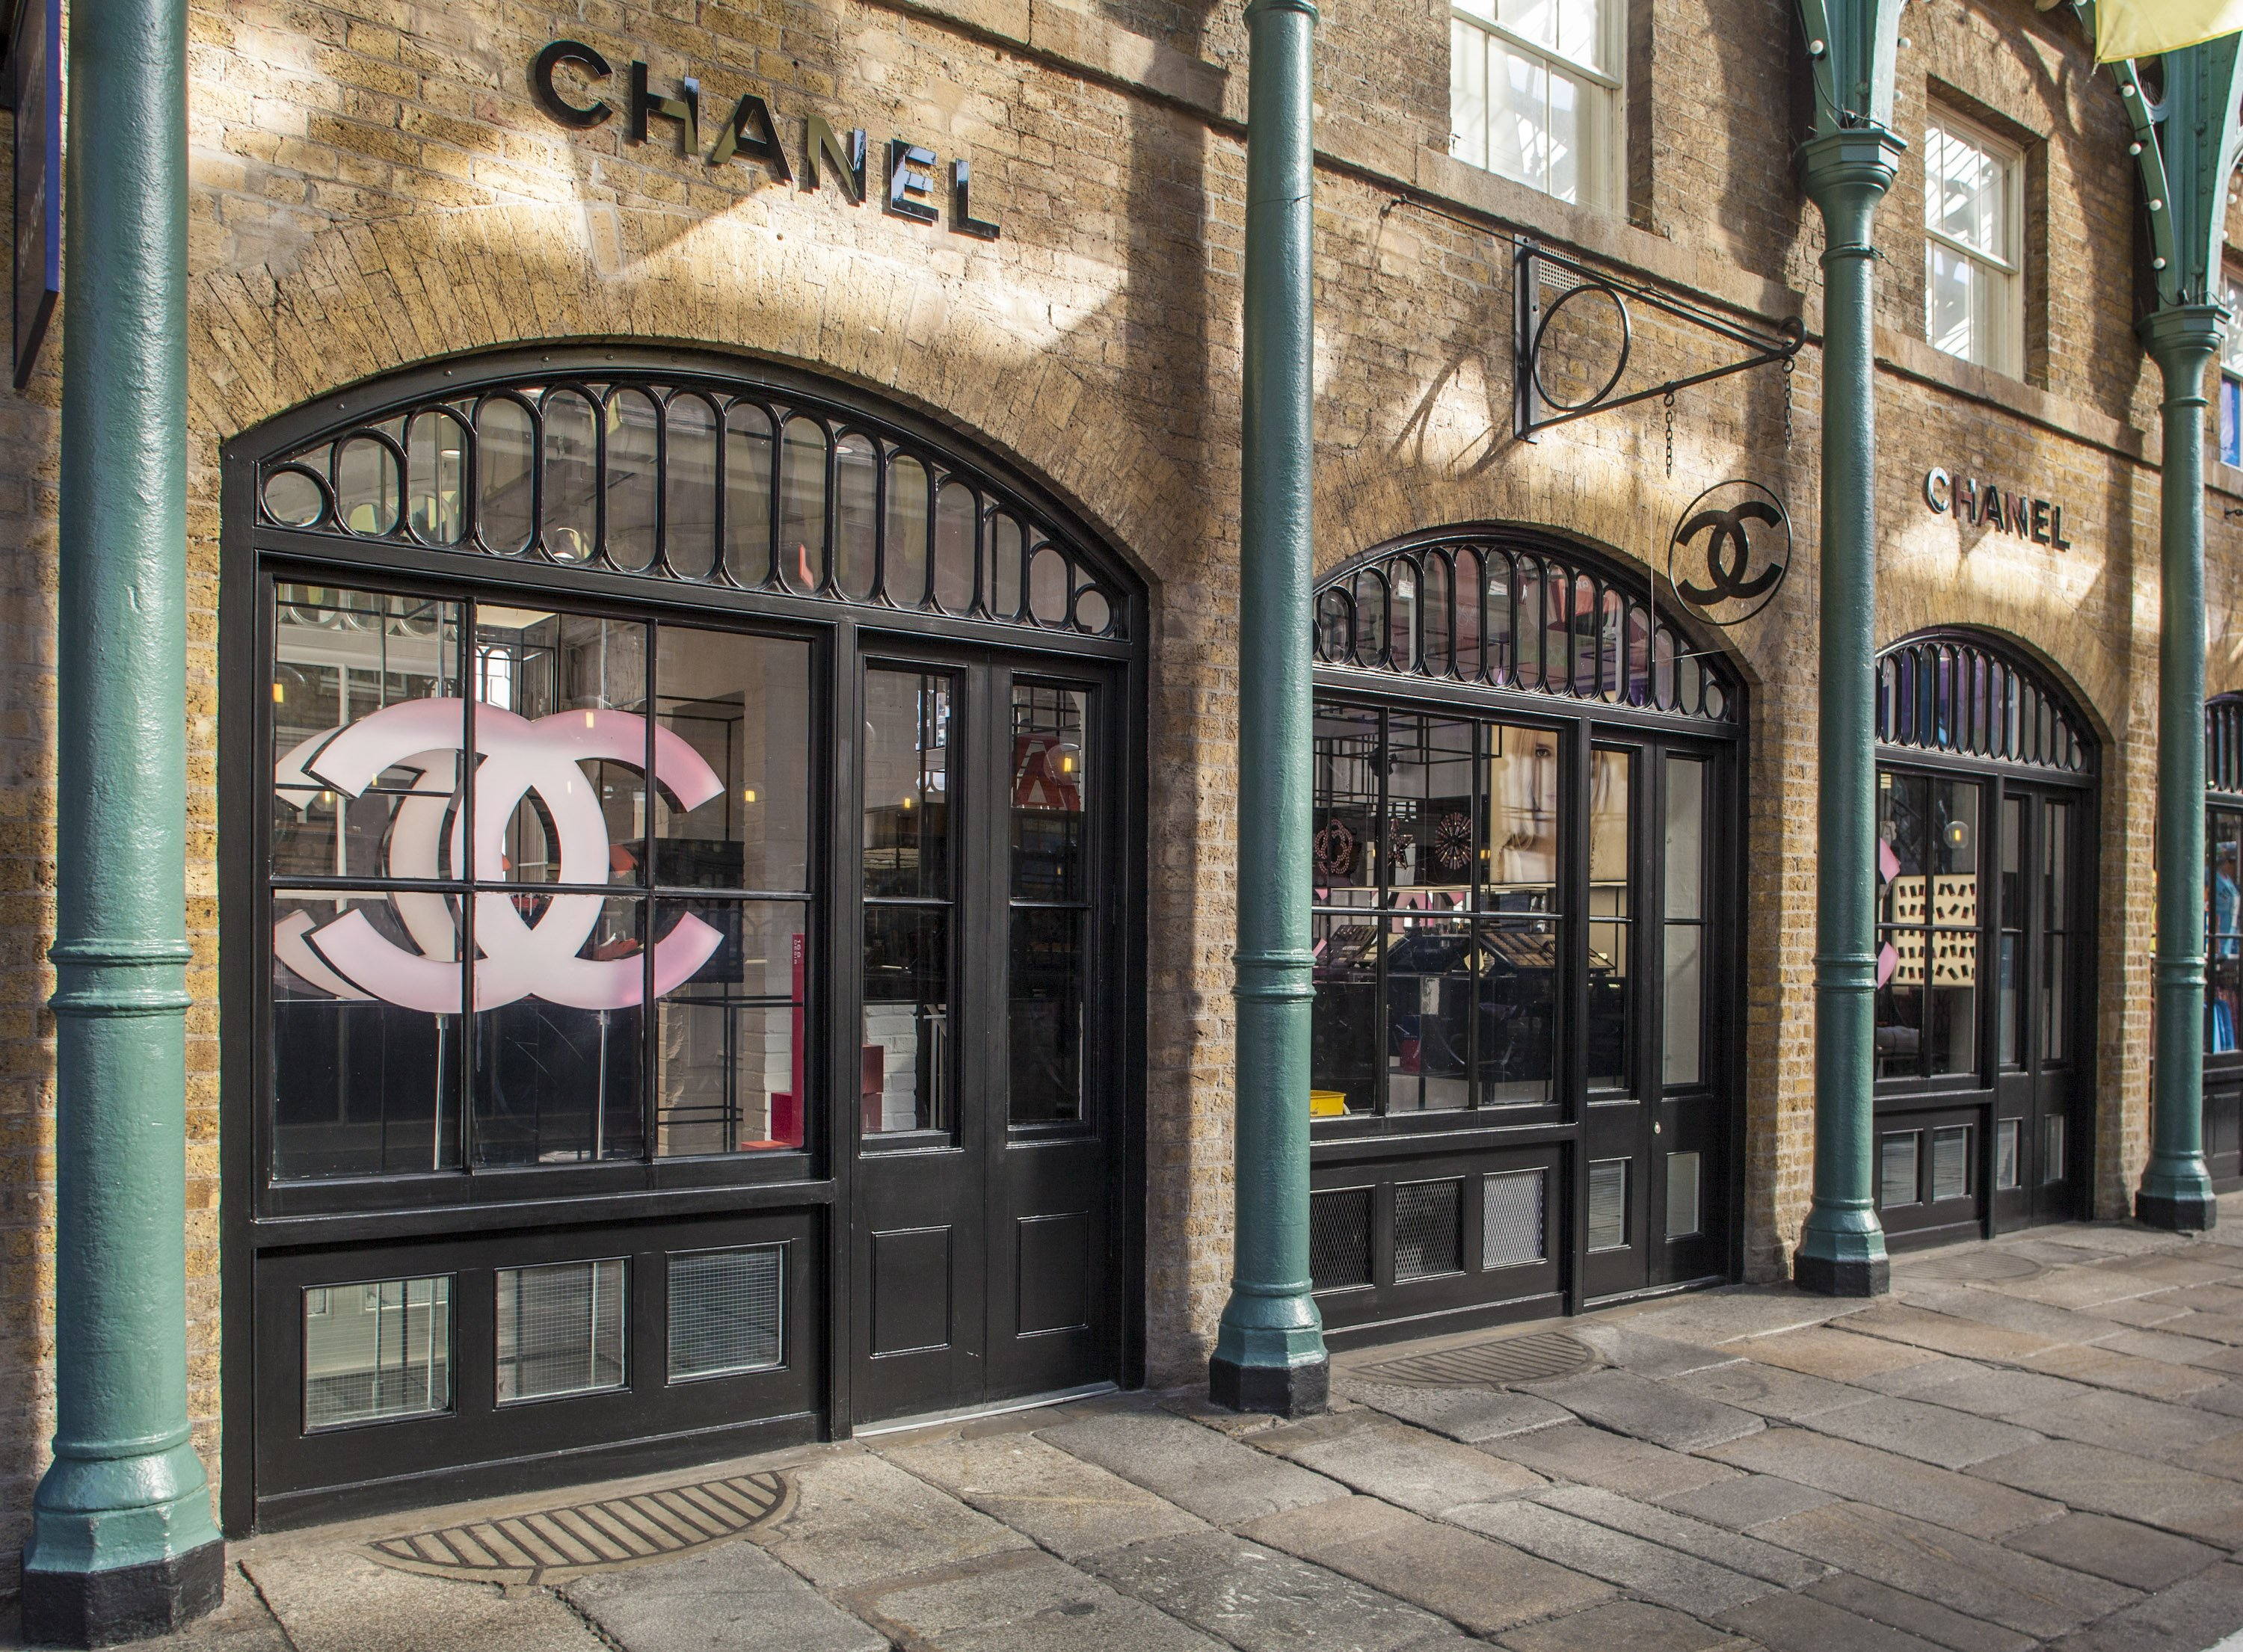 Chanel Pop Up Store Offers Bridal Beauty Services In